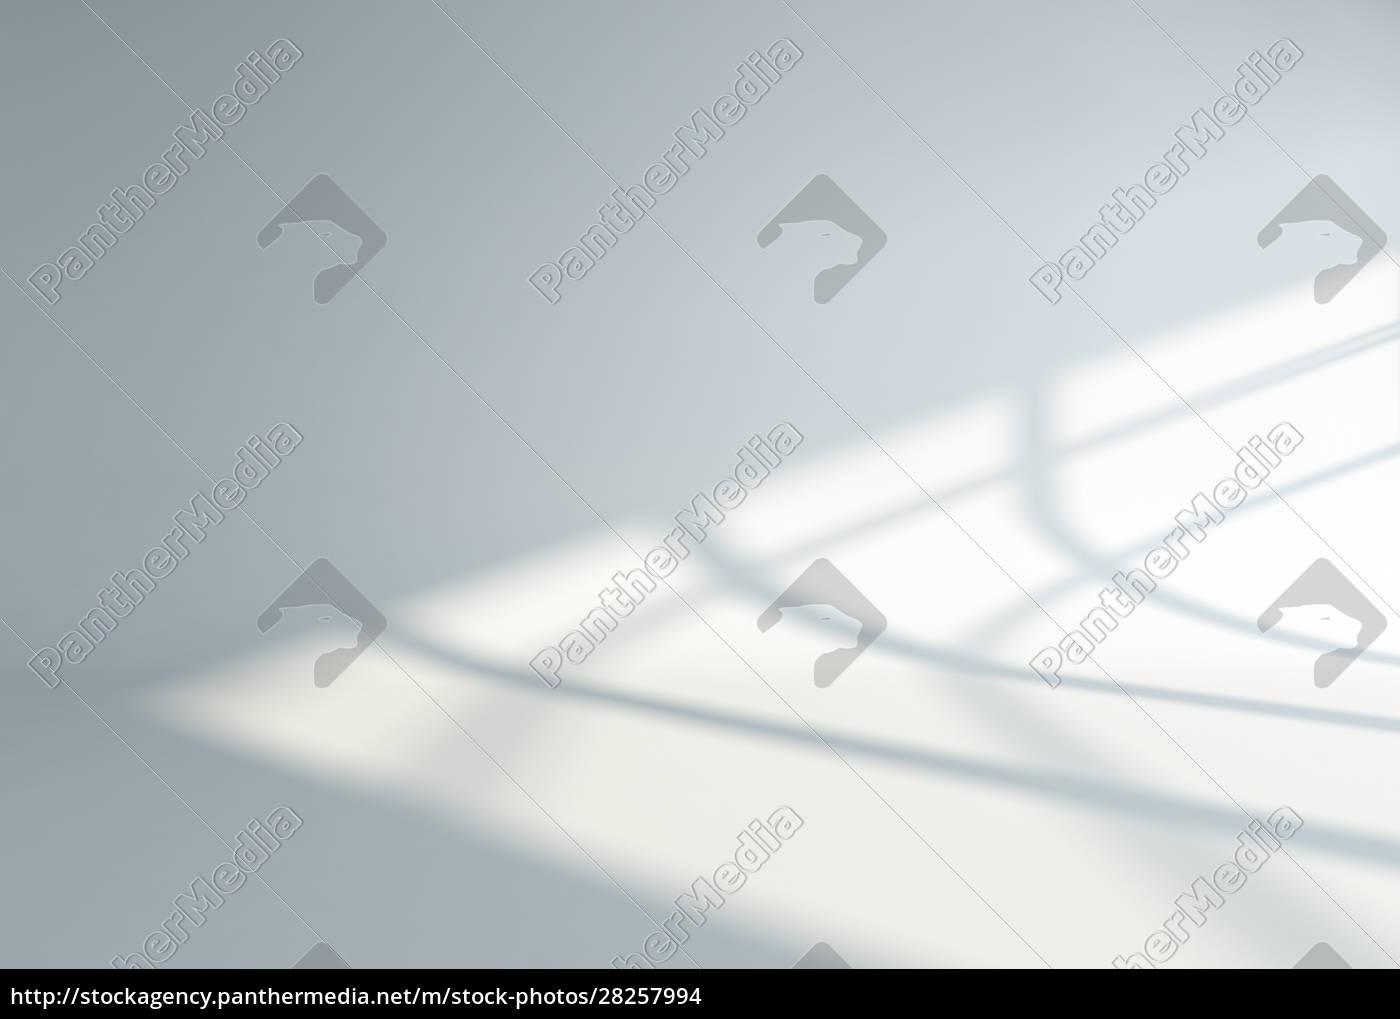 sunlight, reflection, on, curved, surface, and - 28257994